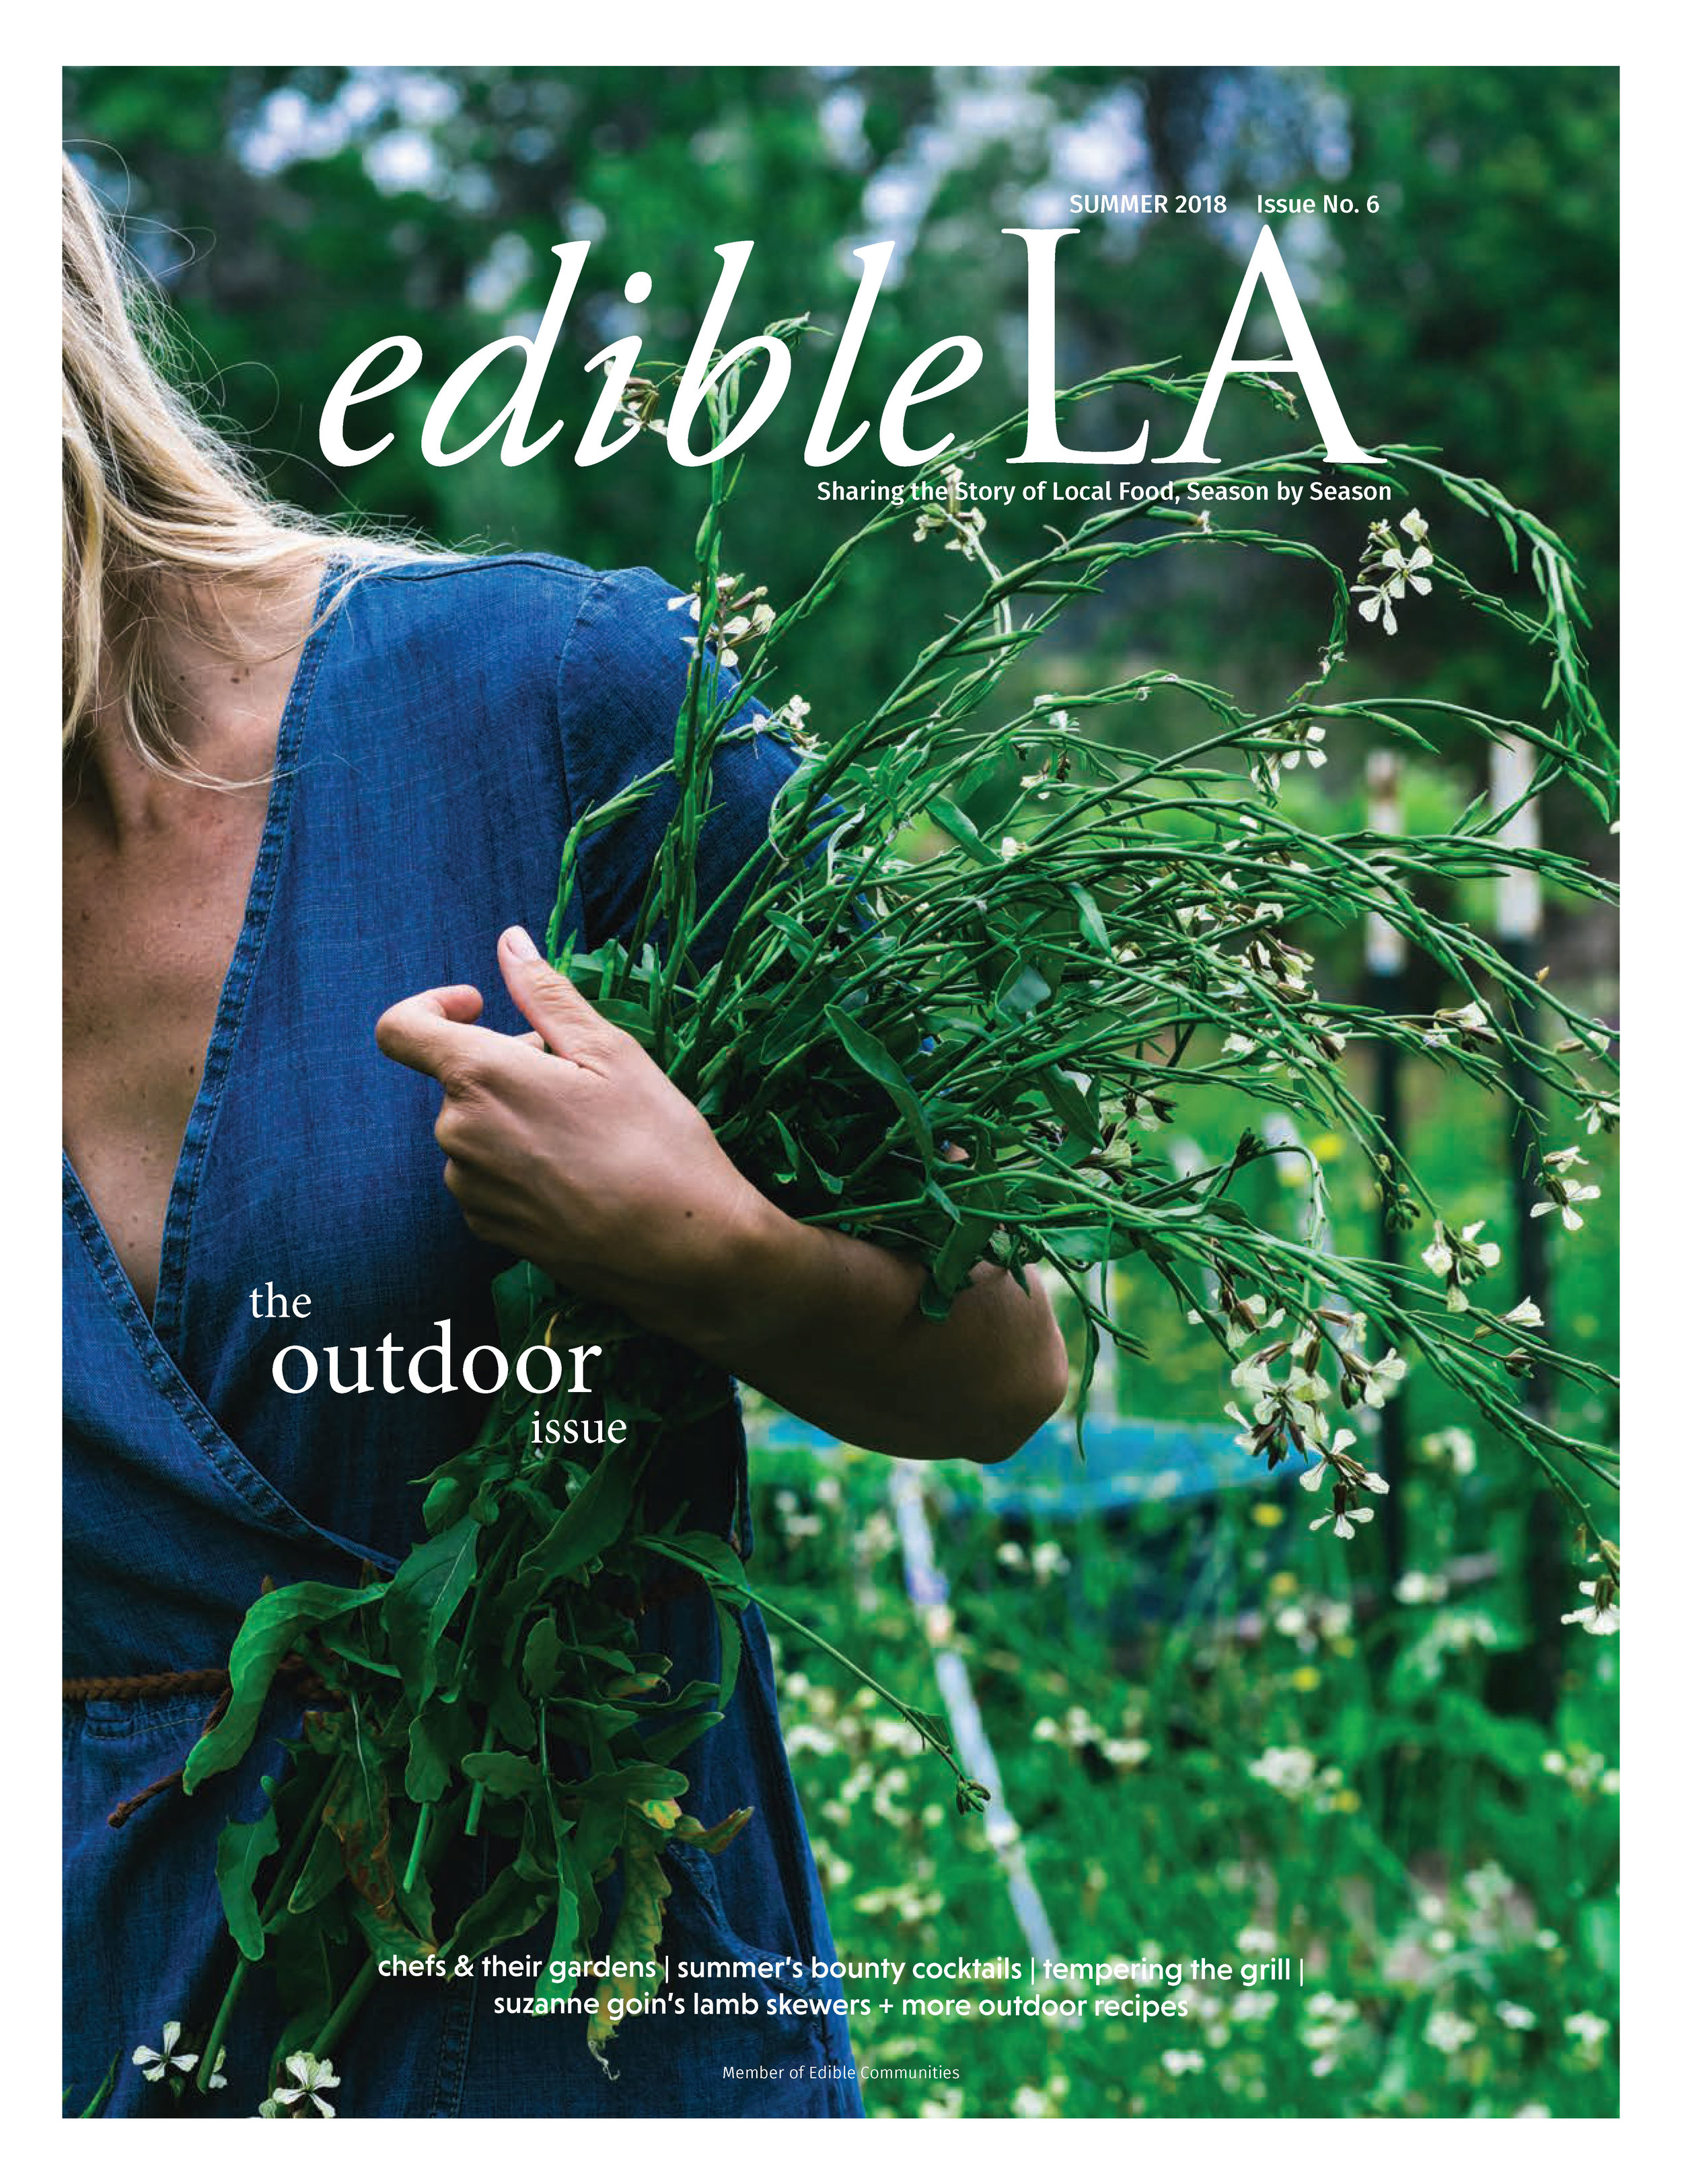 Chefs and their gardens - Edible LA Issue 6, Summer 2018